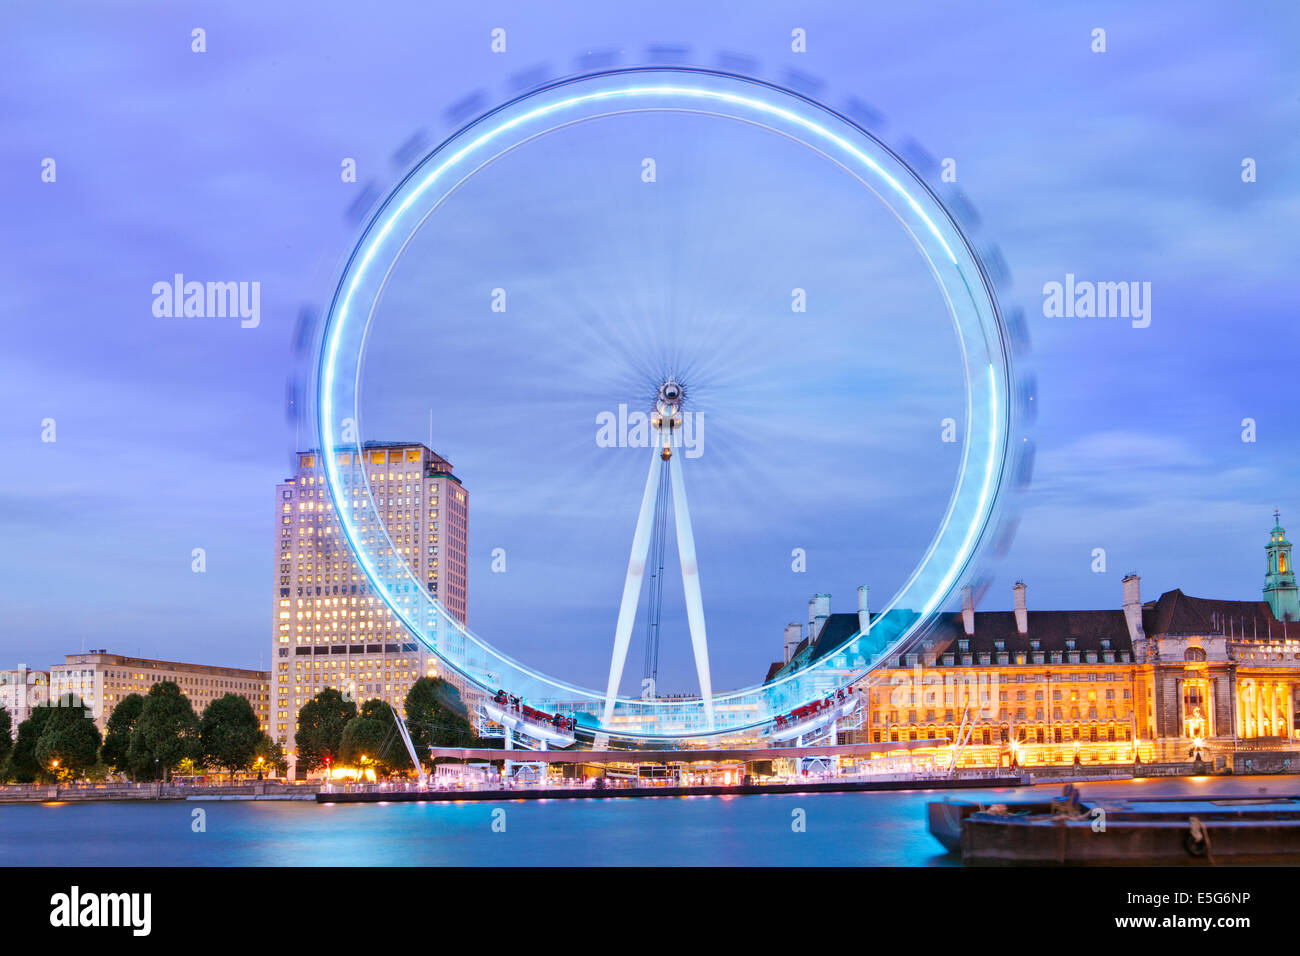 UK, London Eye, County Hall with the London Aquarium and the Shell Building at night - Stock Image